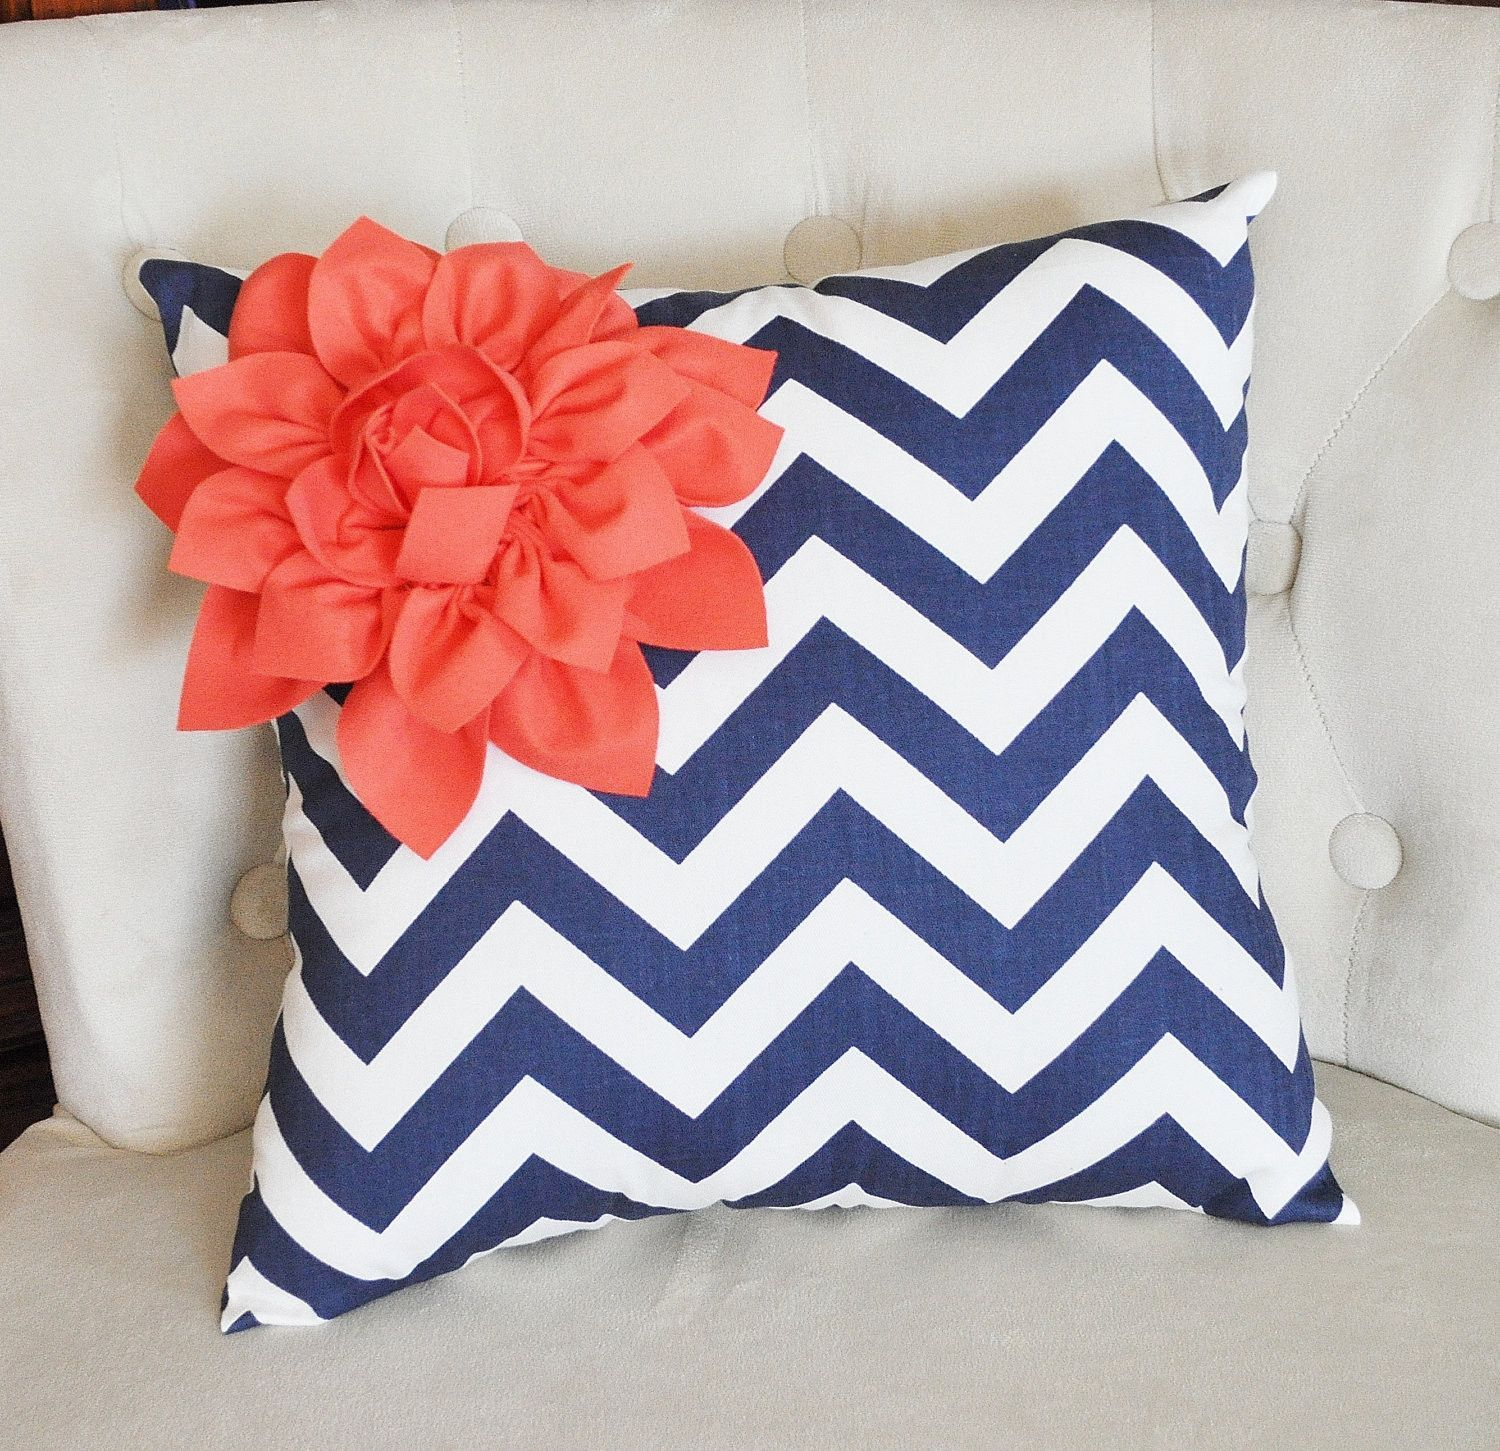 at few scheme coral color pillows navy of bed simple target new with pillow this changes a and preppy